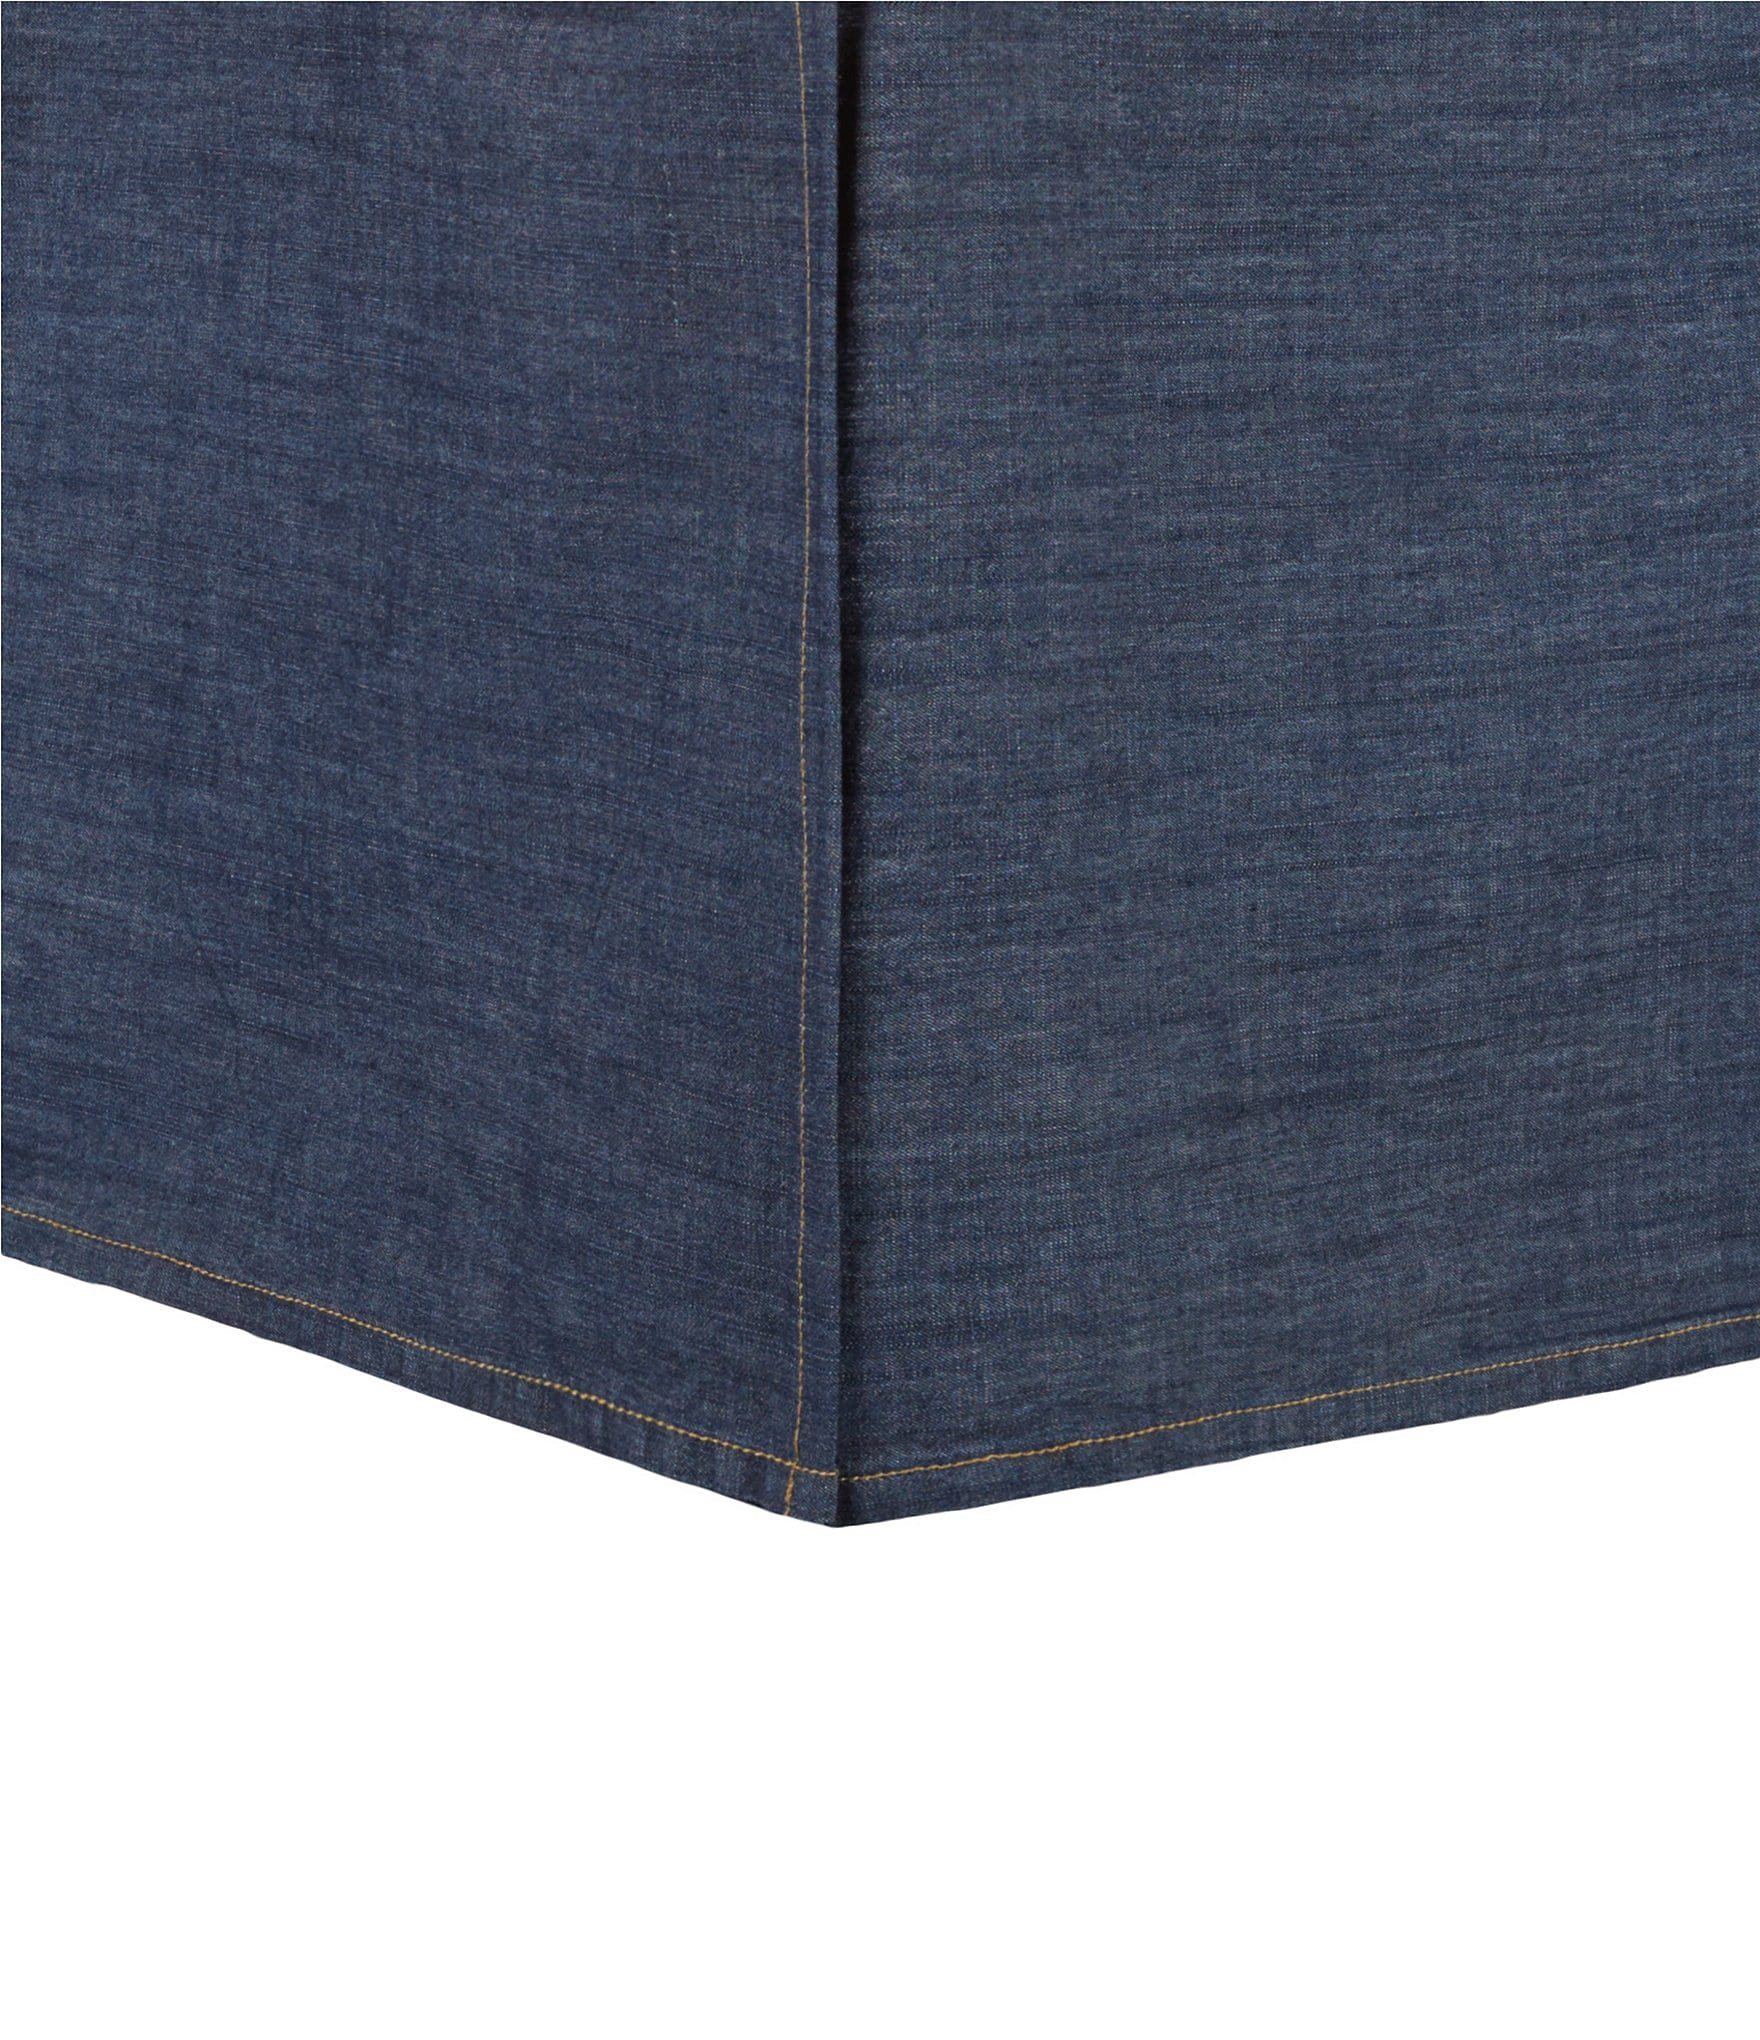 Cremieux Denim Bedskirt Dillards